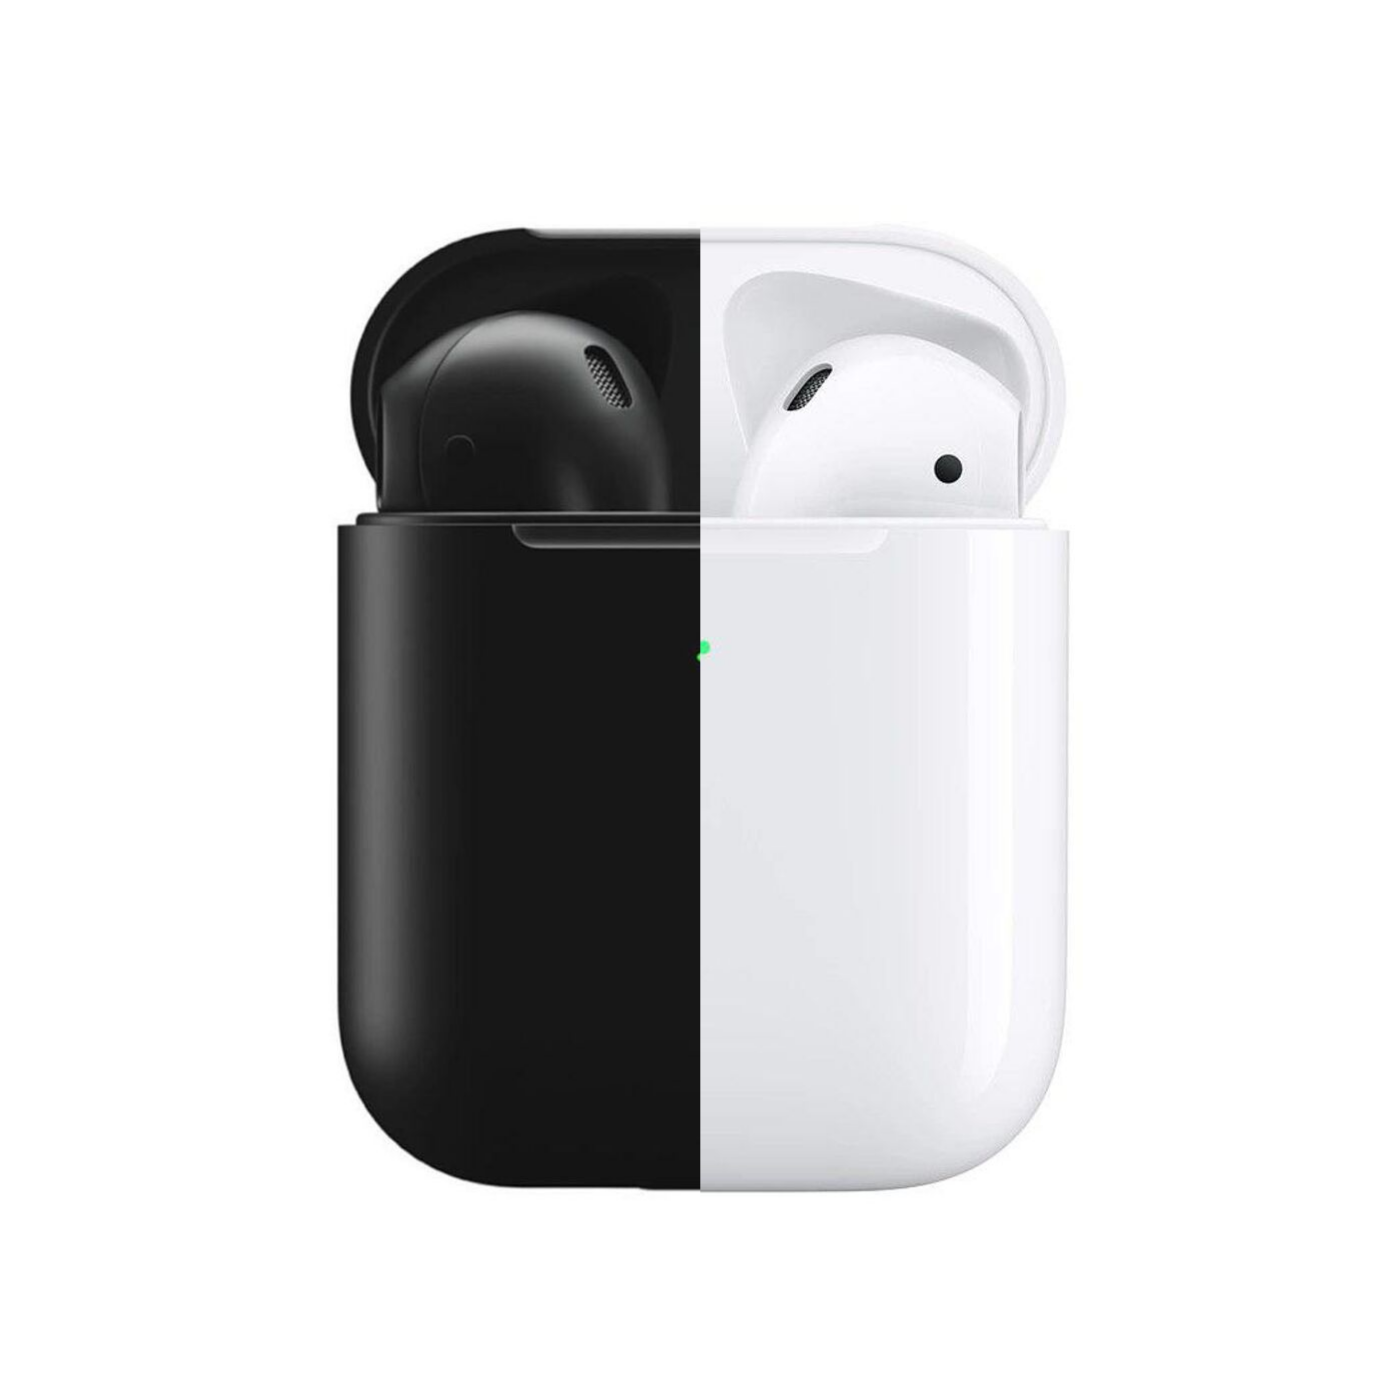 airpods 1 and 2 size difference